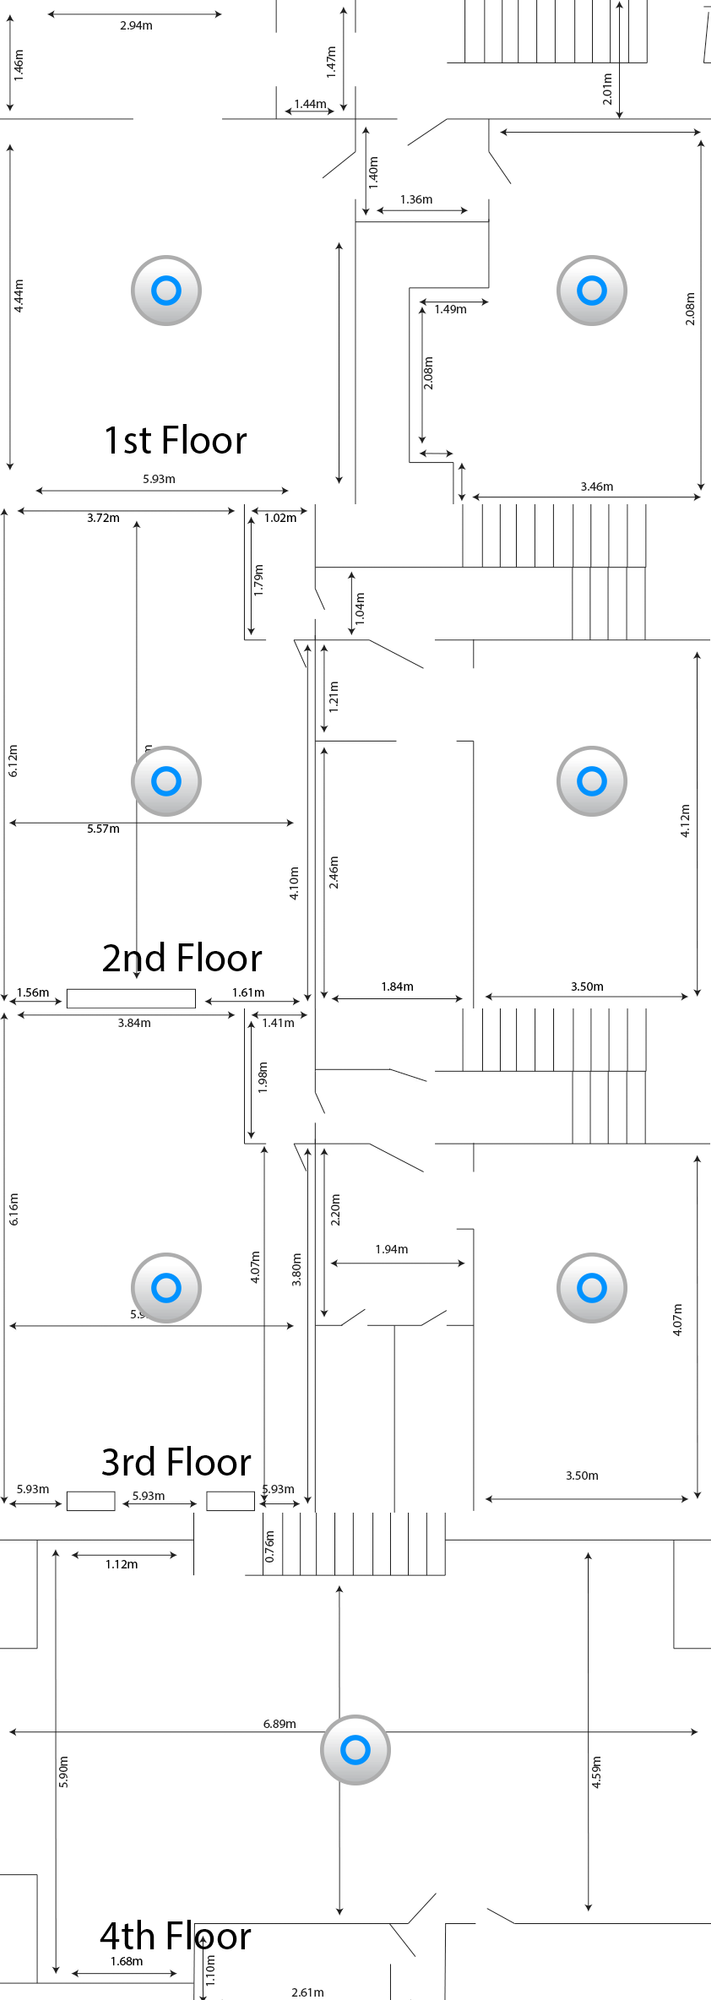 Office Setup Wifi Layout Recommendations Small Rooms Multiple Floors Ubiquiti Community